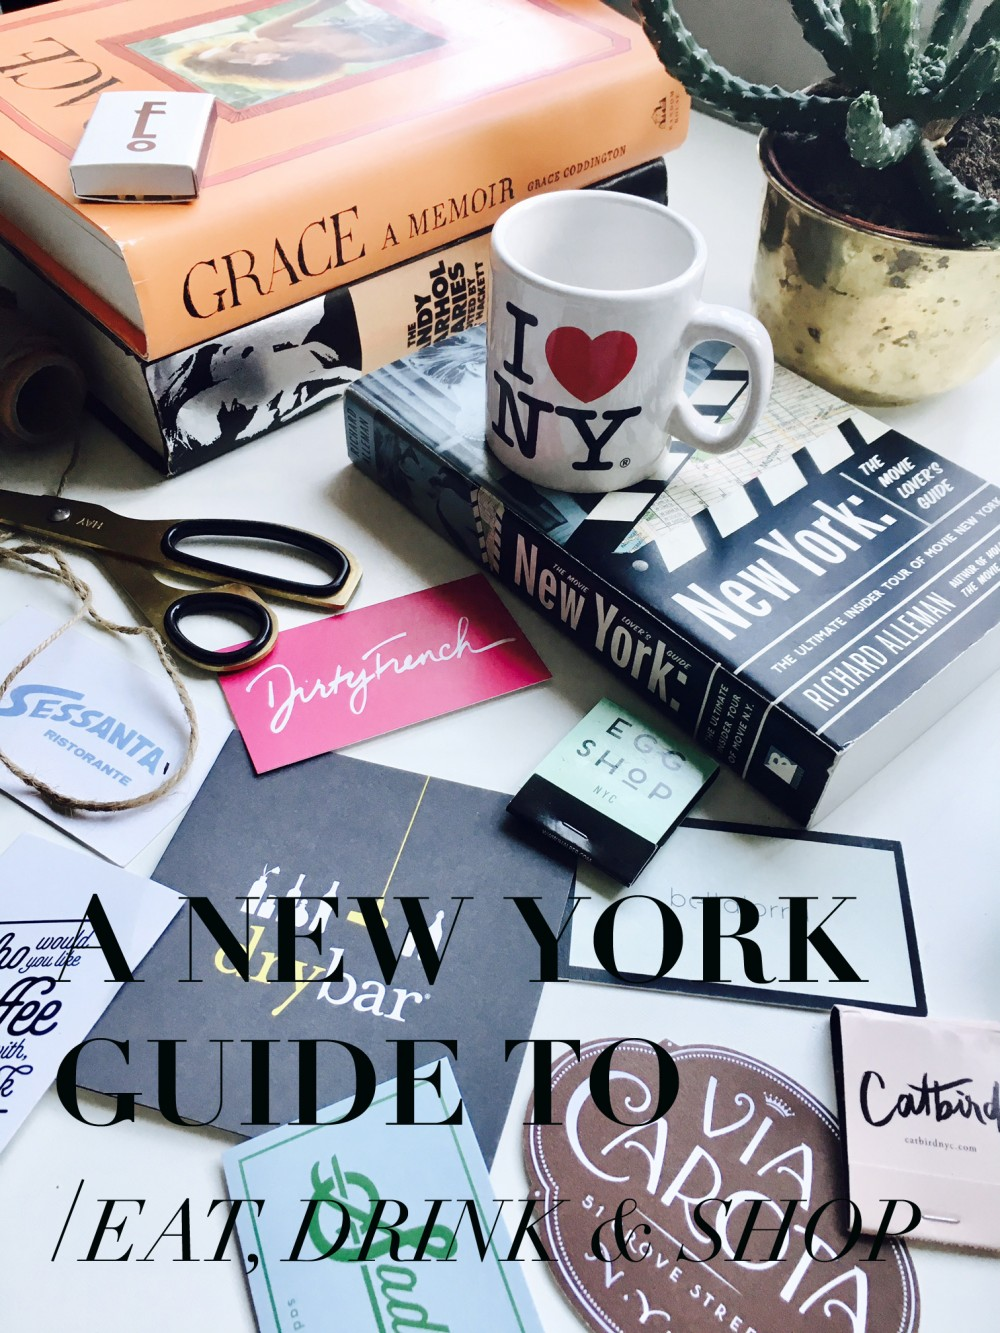 NEWYORKGUIDE